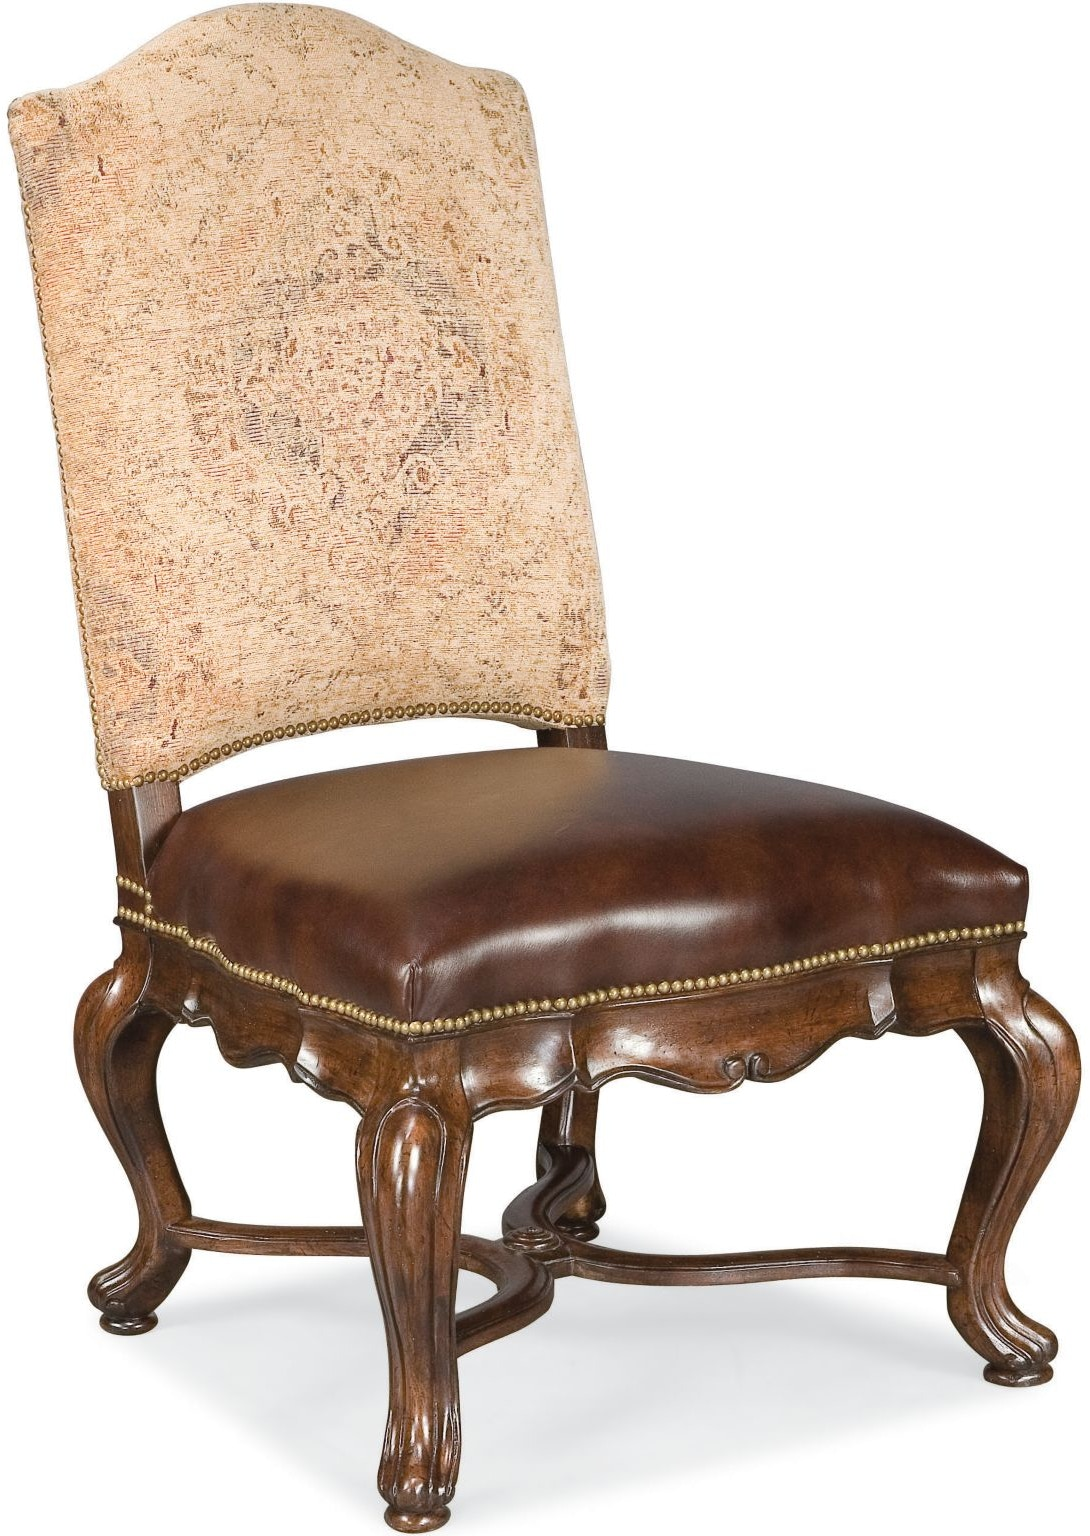 Thomasville Dining Room Bibbiano Upholstered Side Chair  : 43622 881 from www.howellfurniture.com size 768 x 576 jpeg 27kB